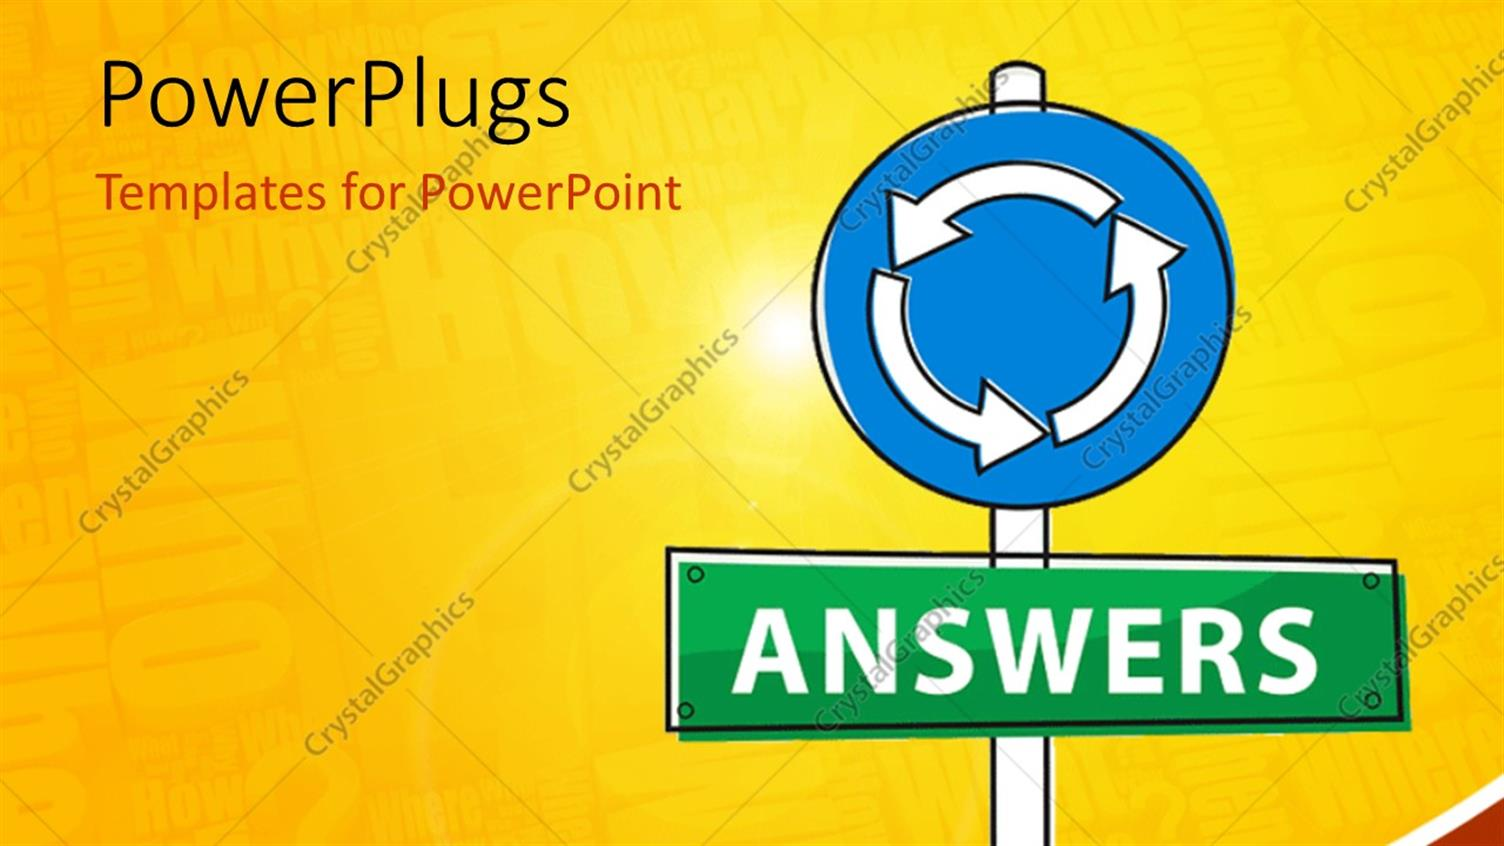 PowerPoint Template Displaying Vector Depiction of a Sign Pointing Road to Find Answers and Questions in the Background